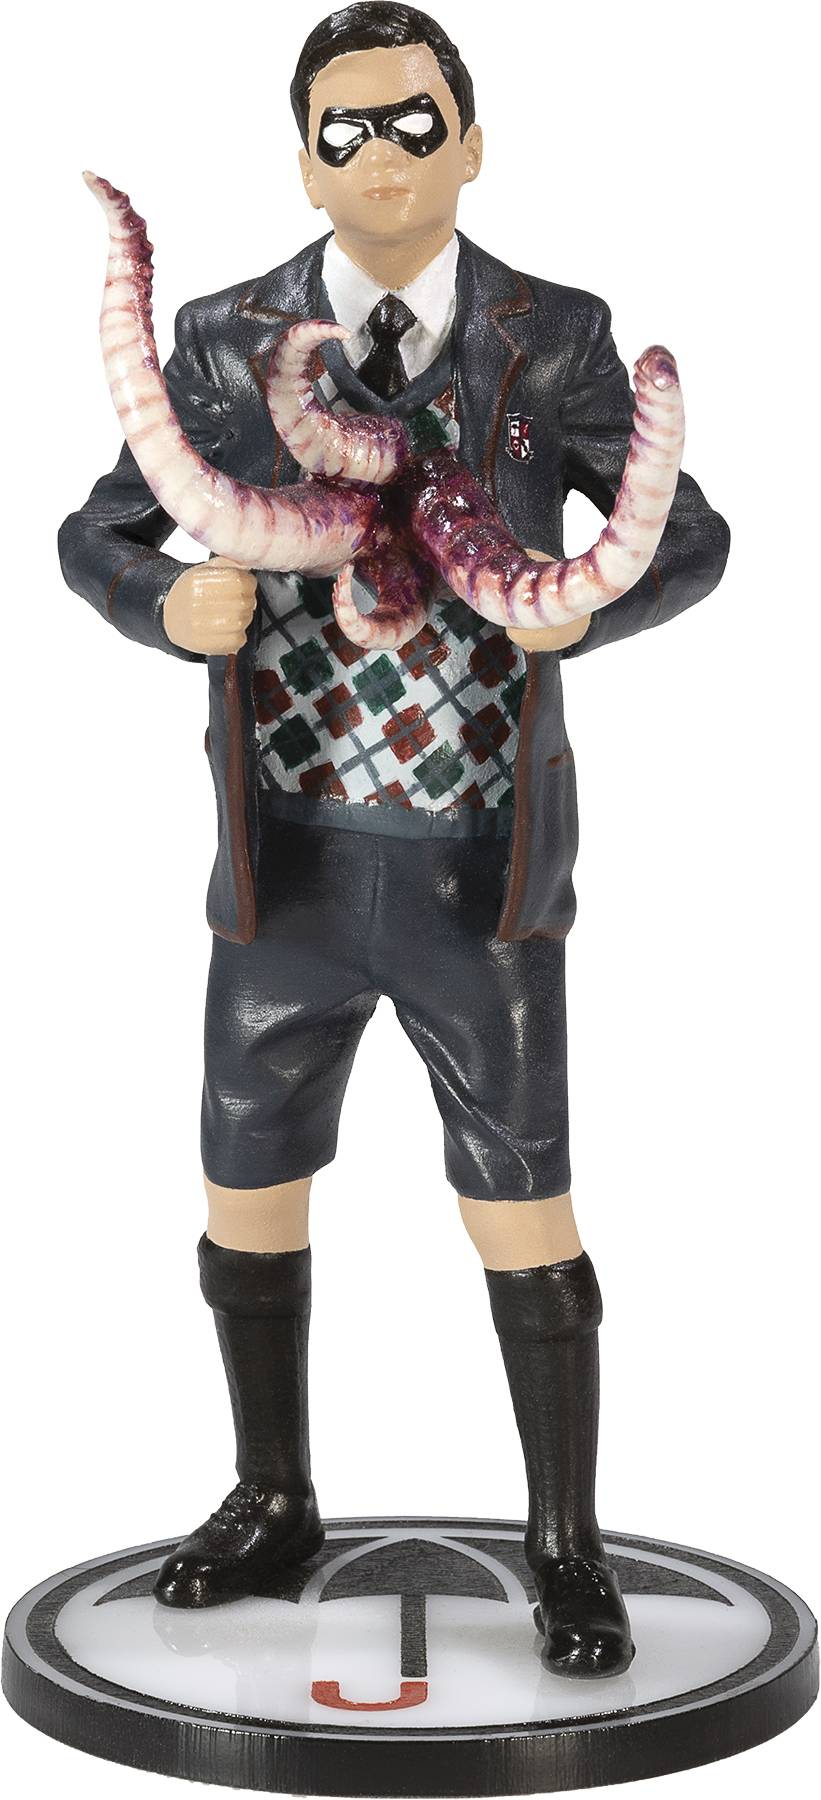 UMBRELLA ACADEMY PROP FIGURE #6 BEN